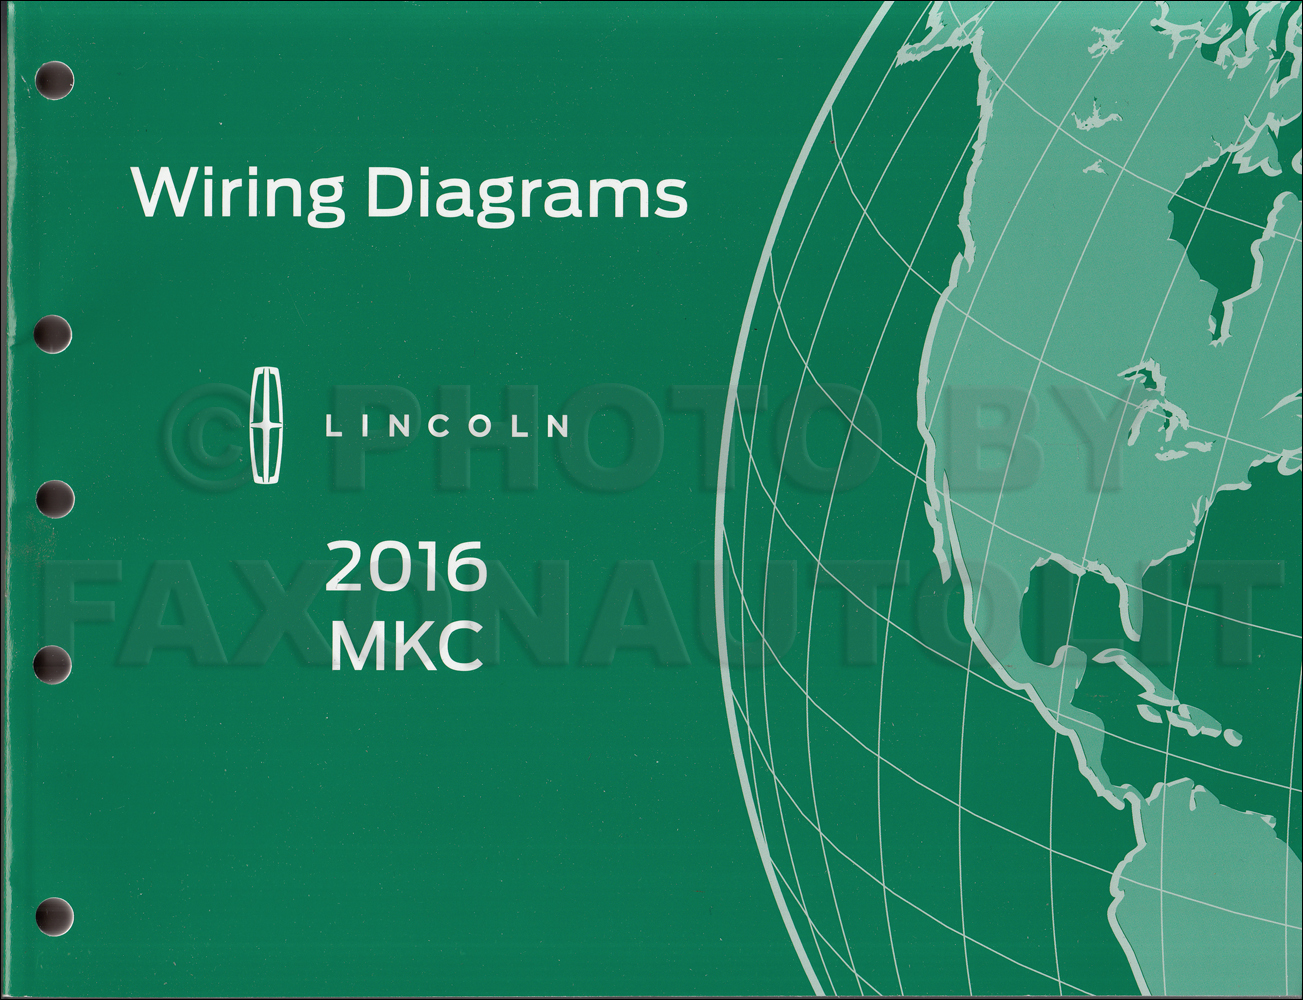 Lincoln Mkc Wiring Diagrams - Enthusiast Wiring Diagrams •